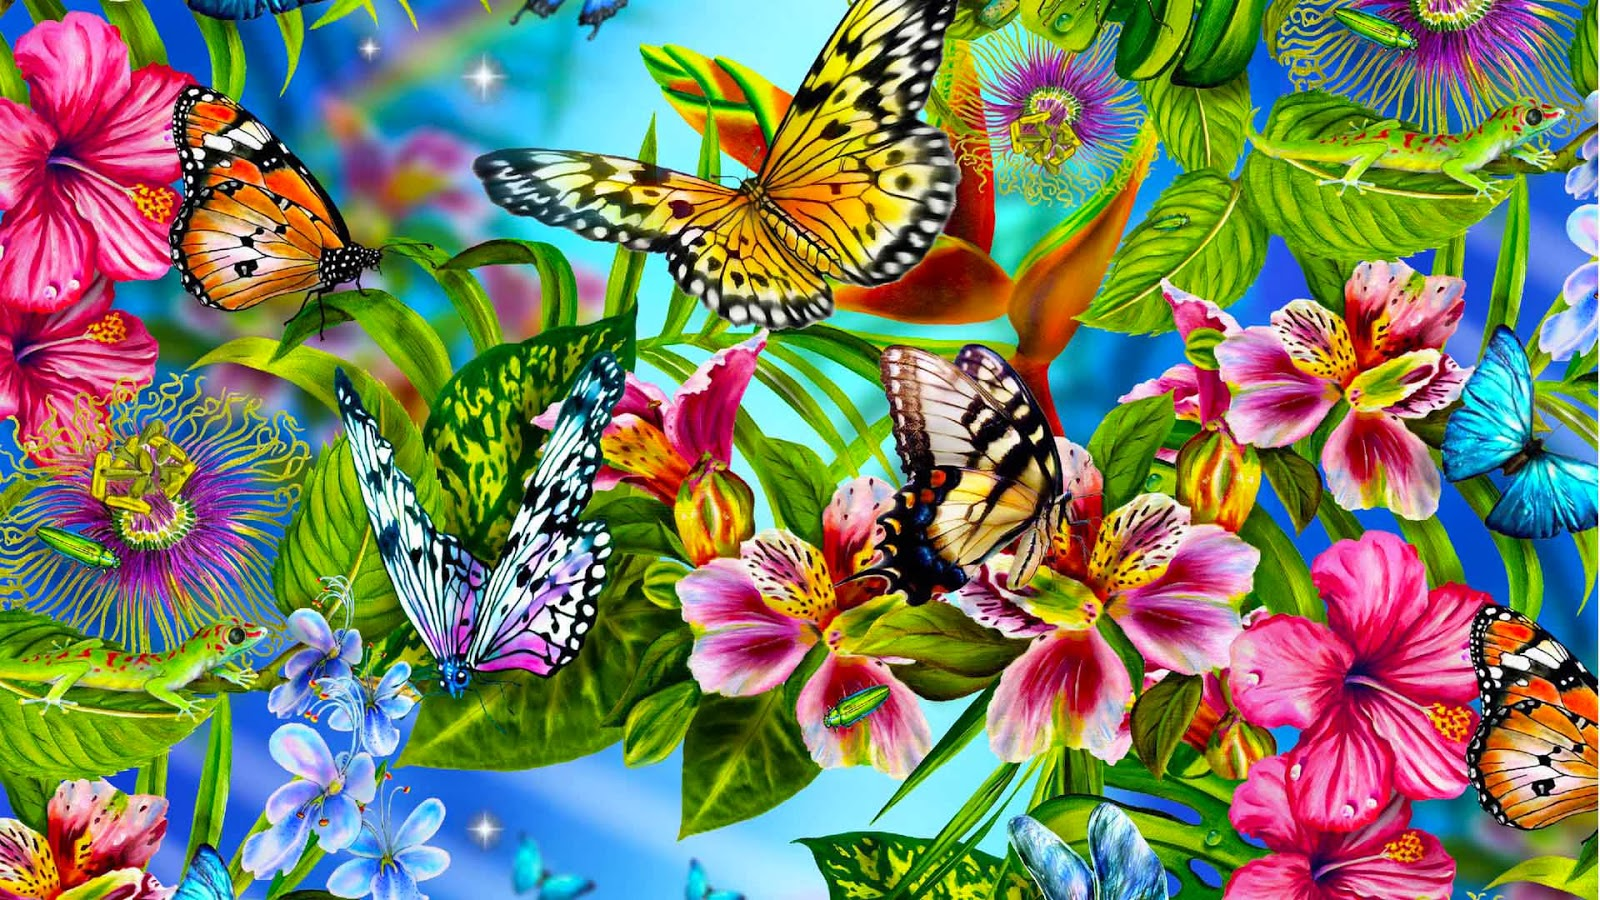 Butterflies Wallpapers Hd Download: HD Butterflies: Pink Butterflies Flying Wallpaper